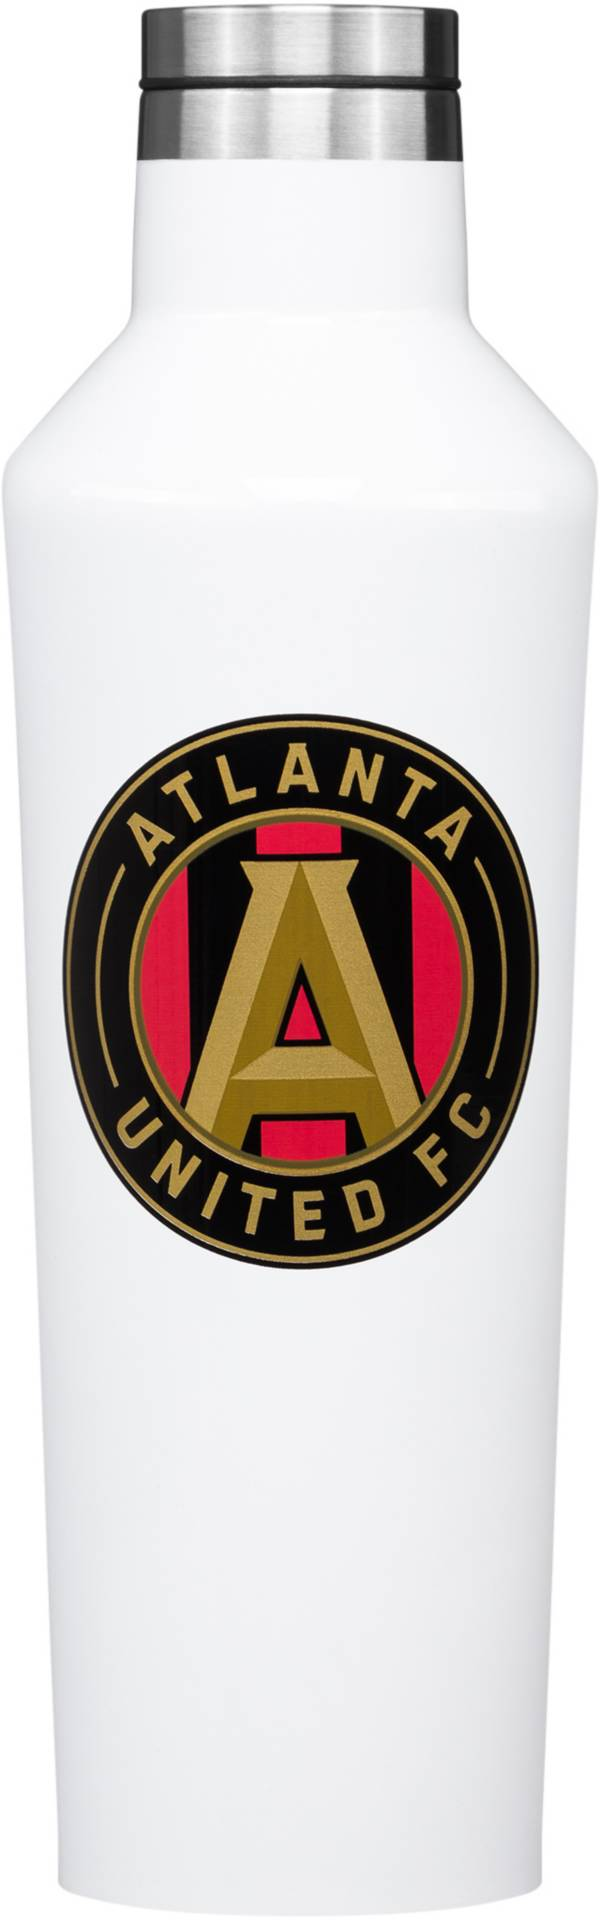 Corkcicle Atlanta United 16oz. Canteen product image